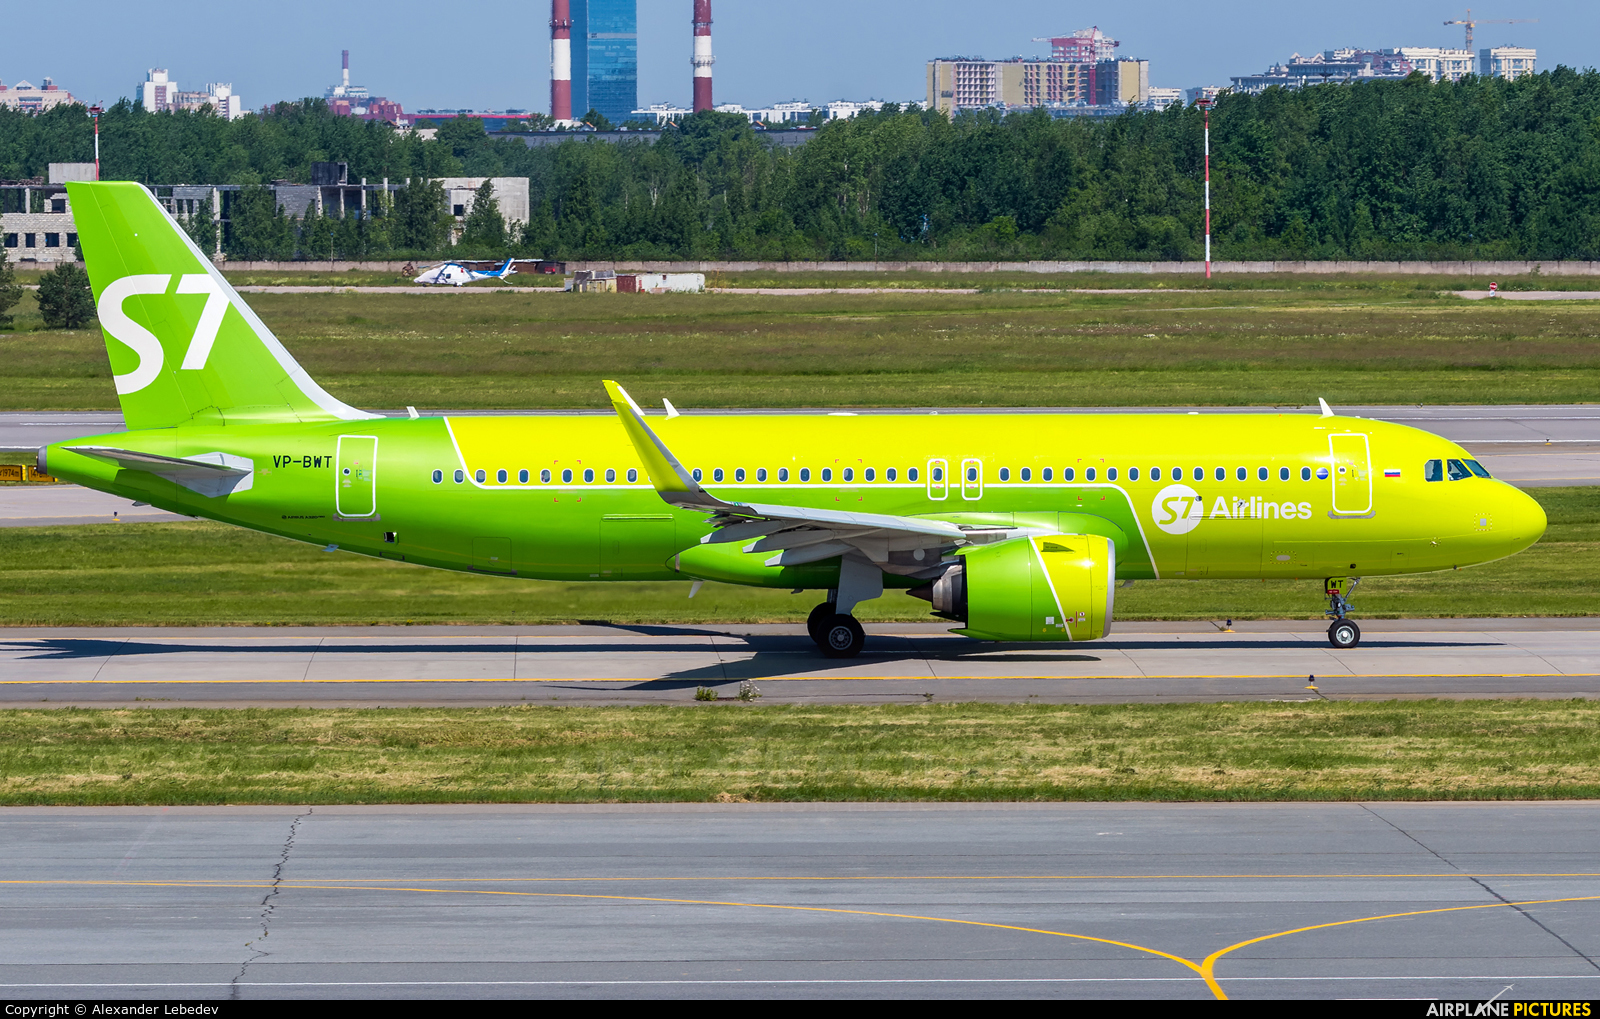 S7 Airlines VP-BWT aircraft at St. Petersburg - Pulkovo